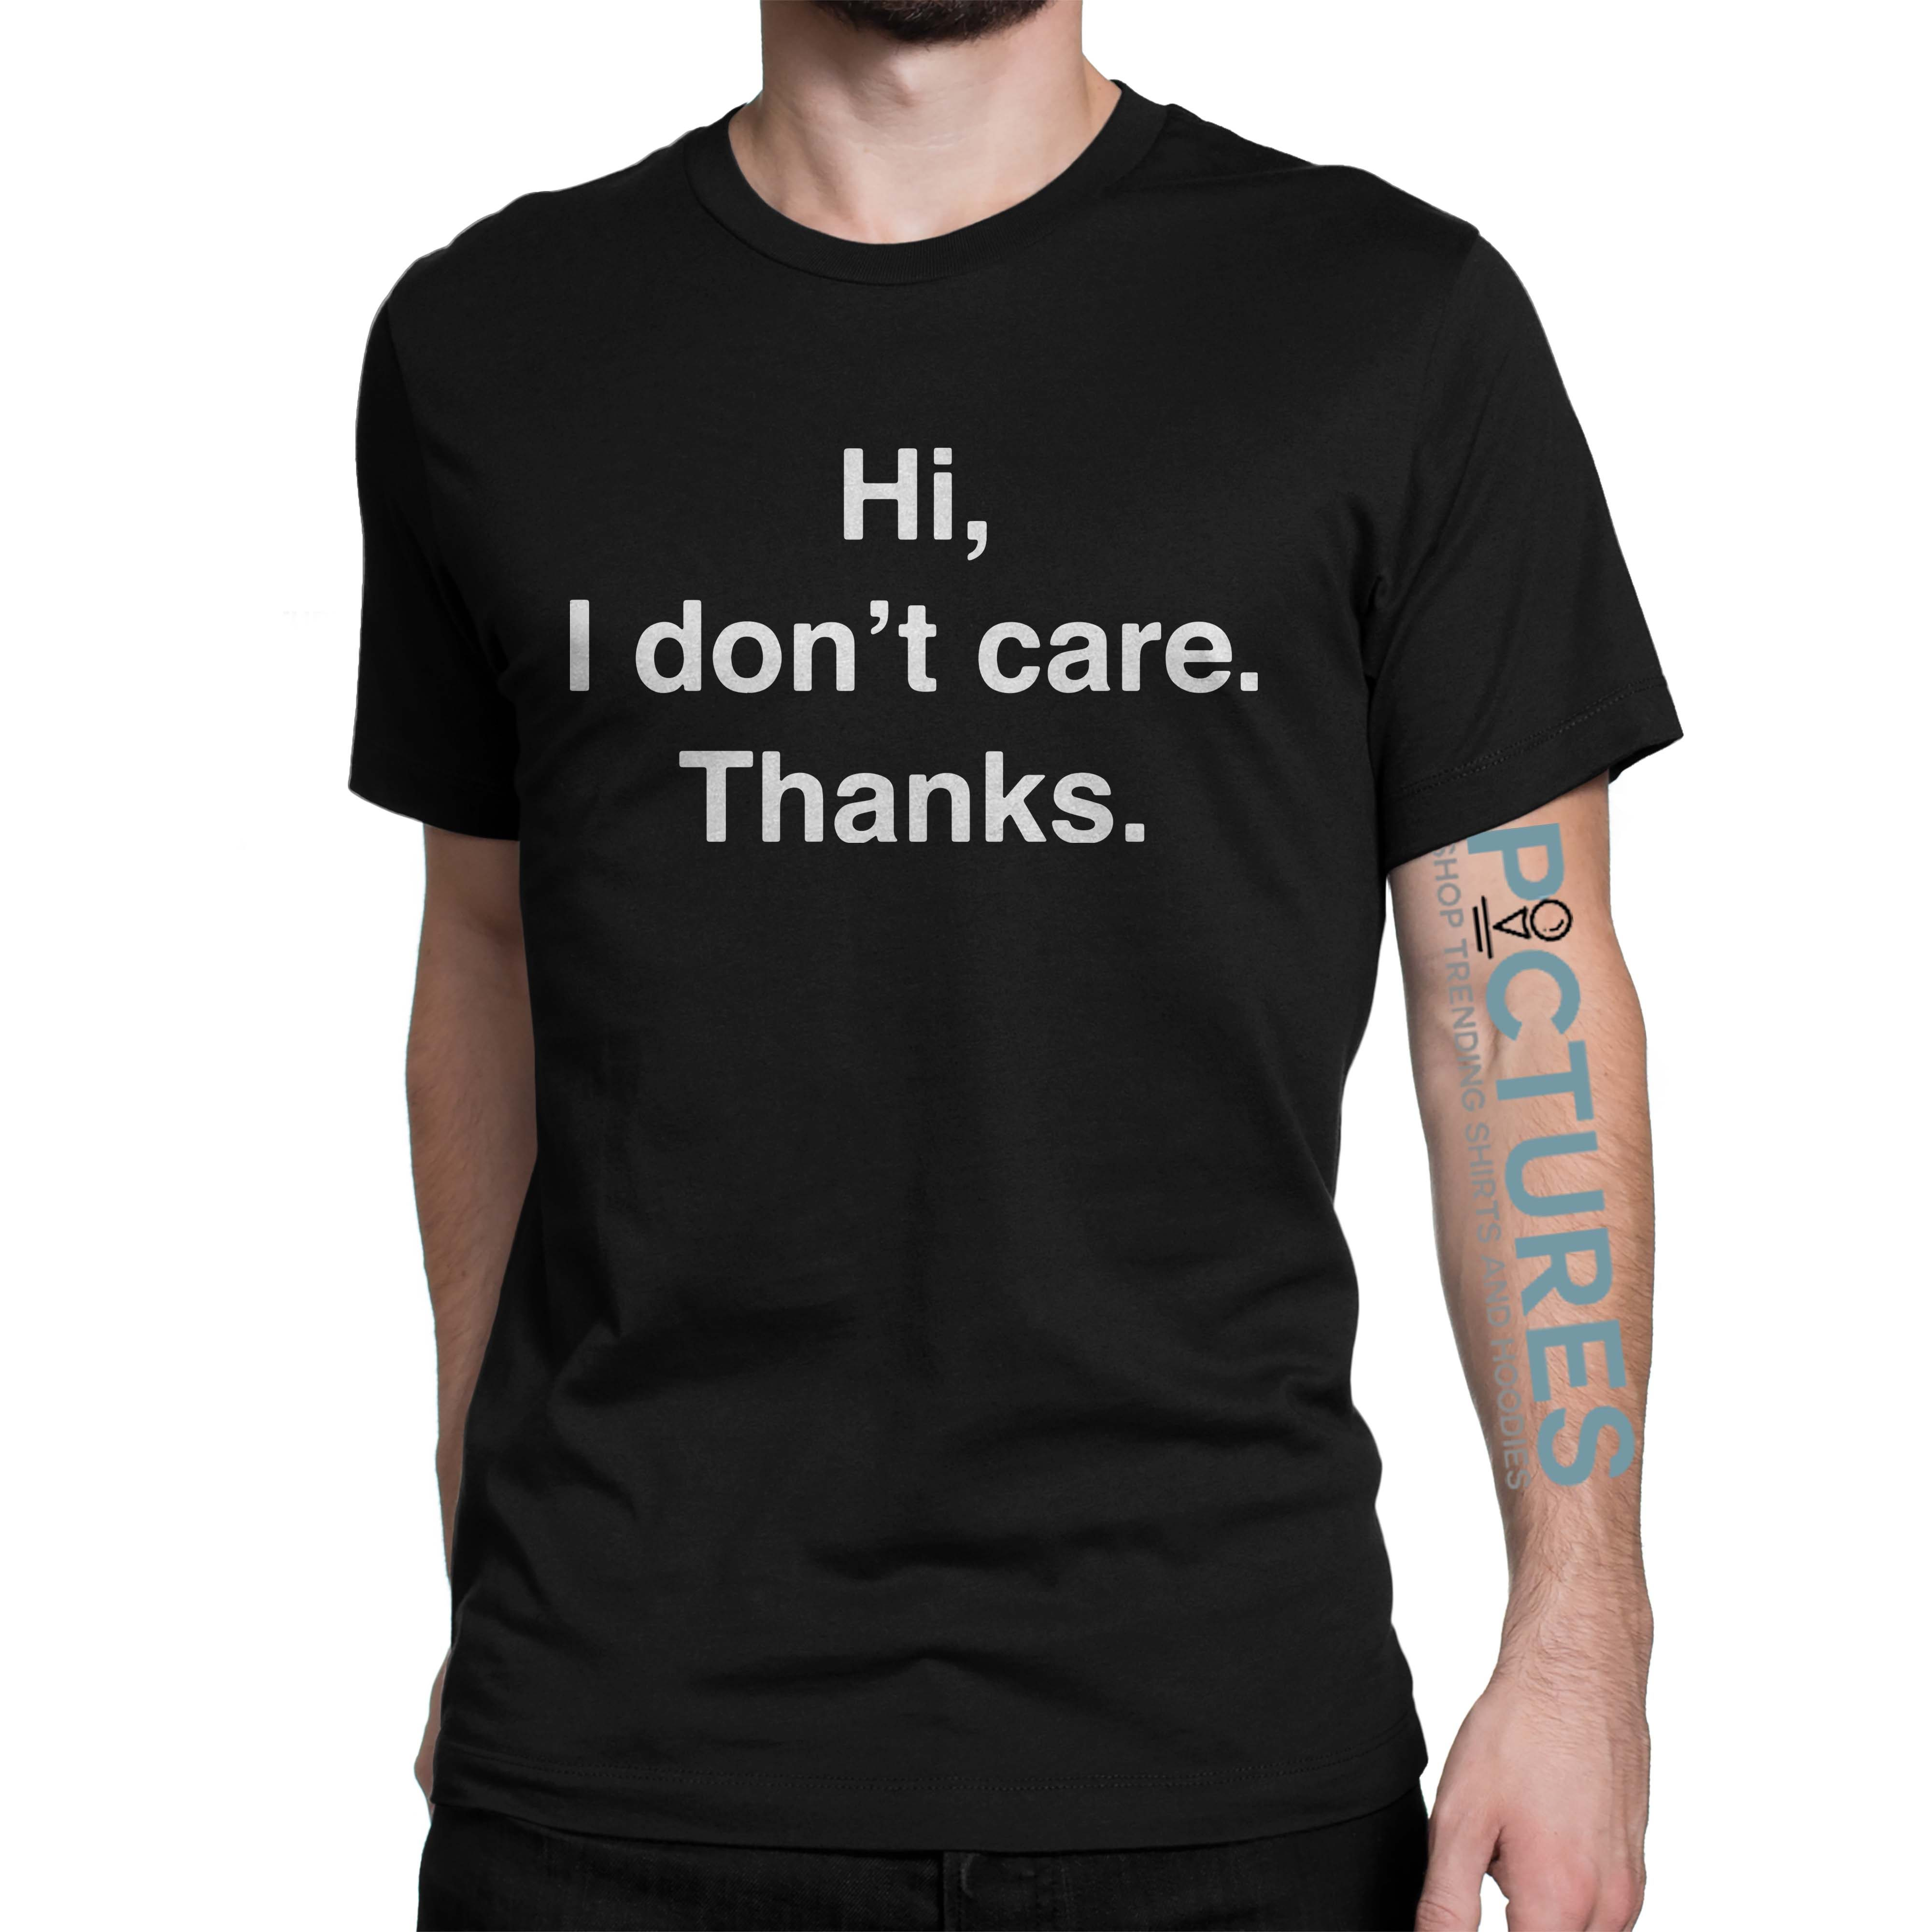 Official Hi I don't care shirt